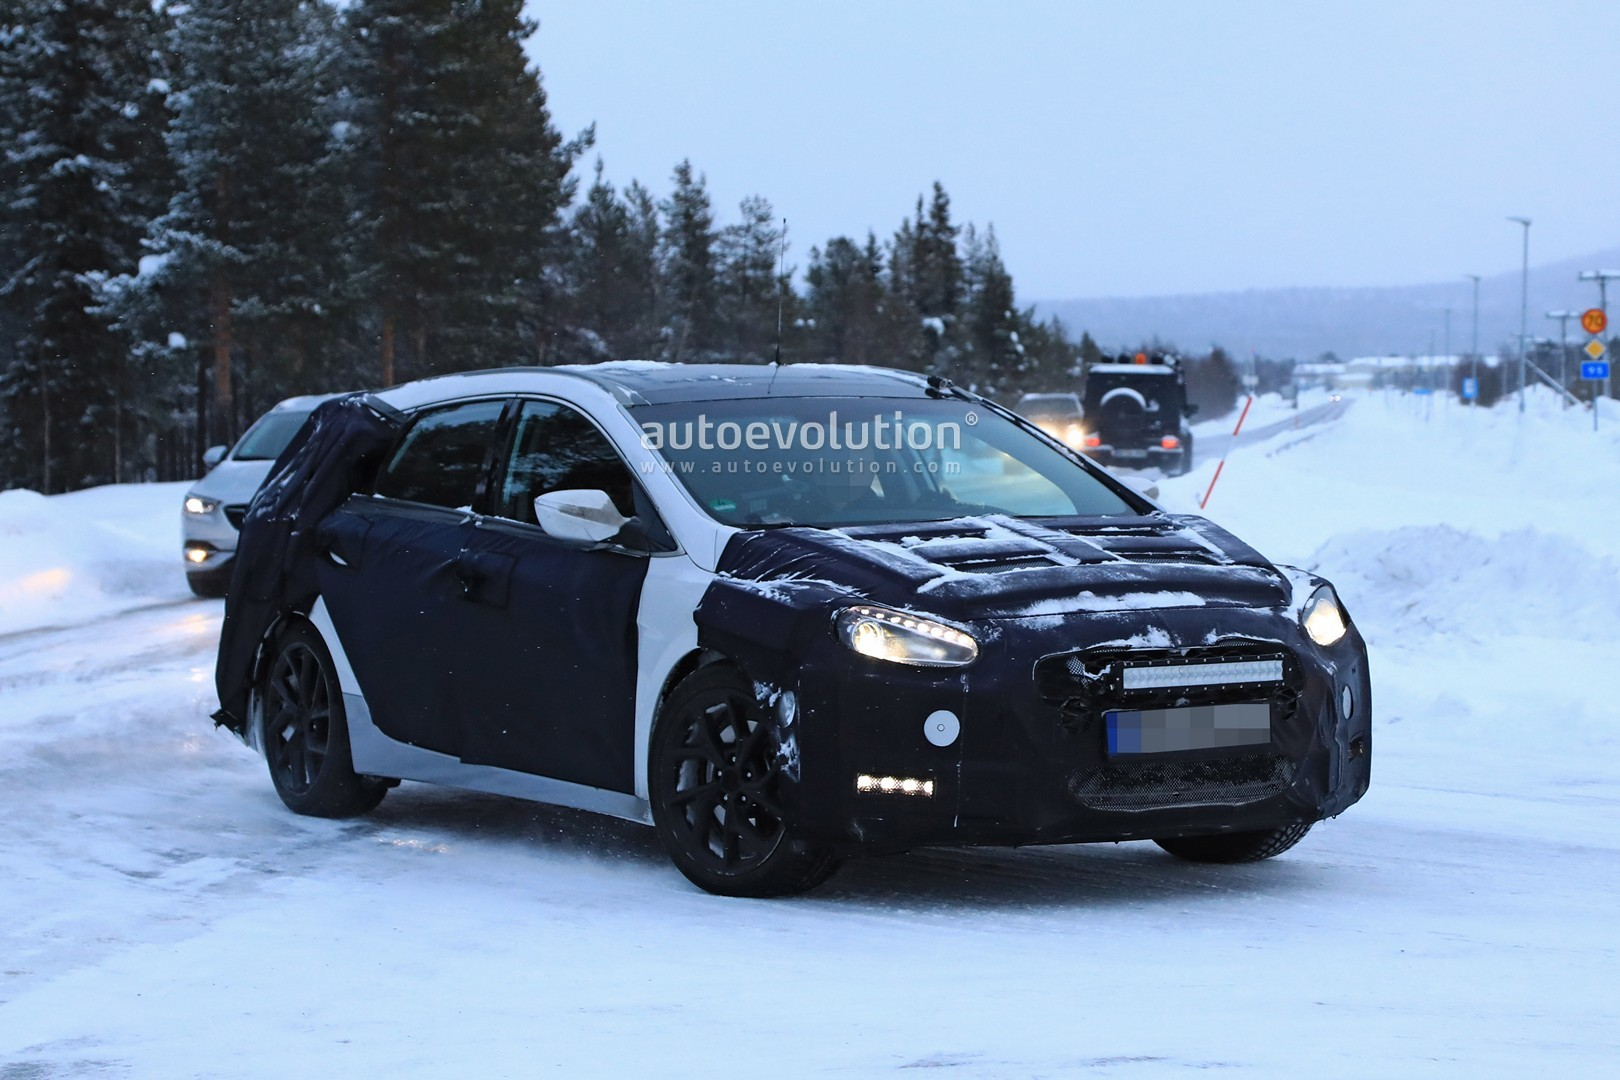 2019 hyundai i40 wagon spied winter benchmark testing with opel insignia autoevolution. Black Bedroom Furniture Sets. Home Design Ideas